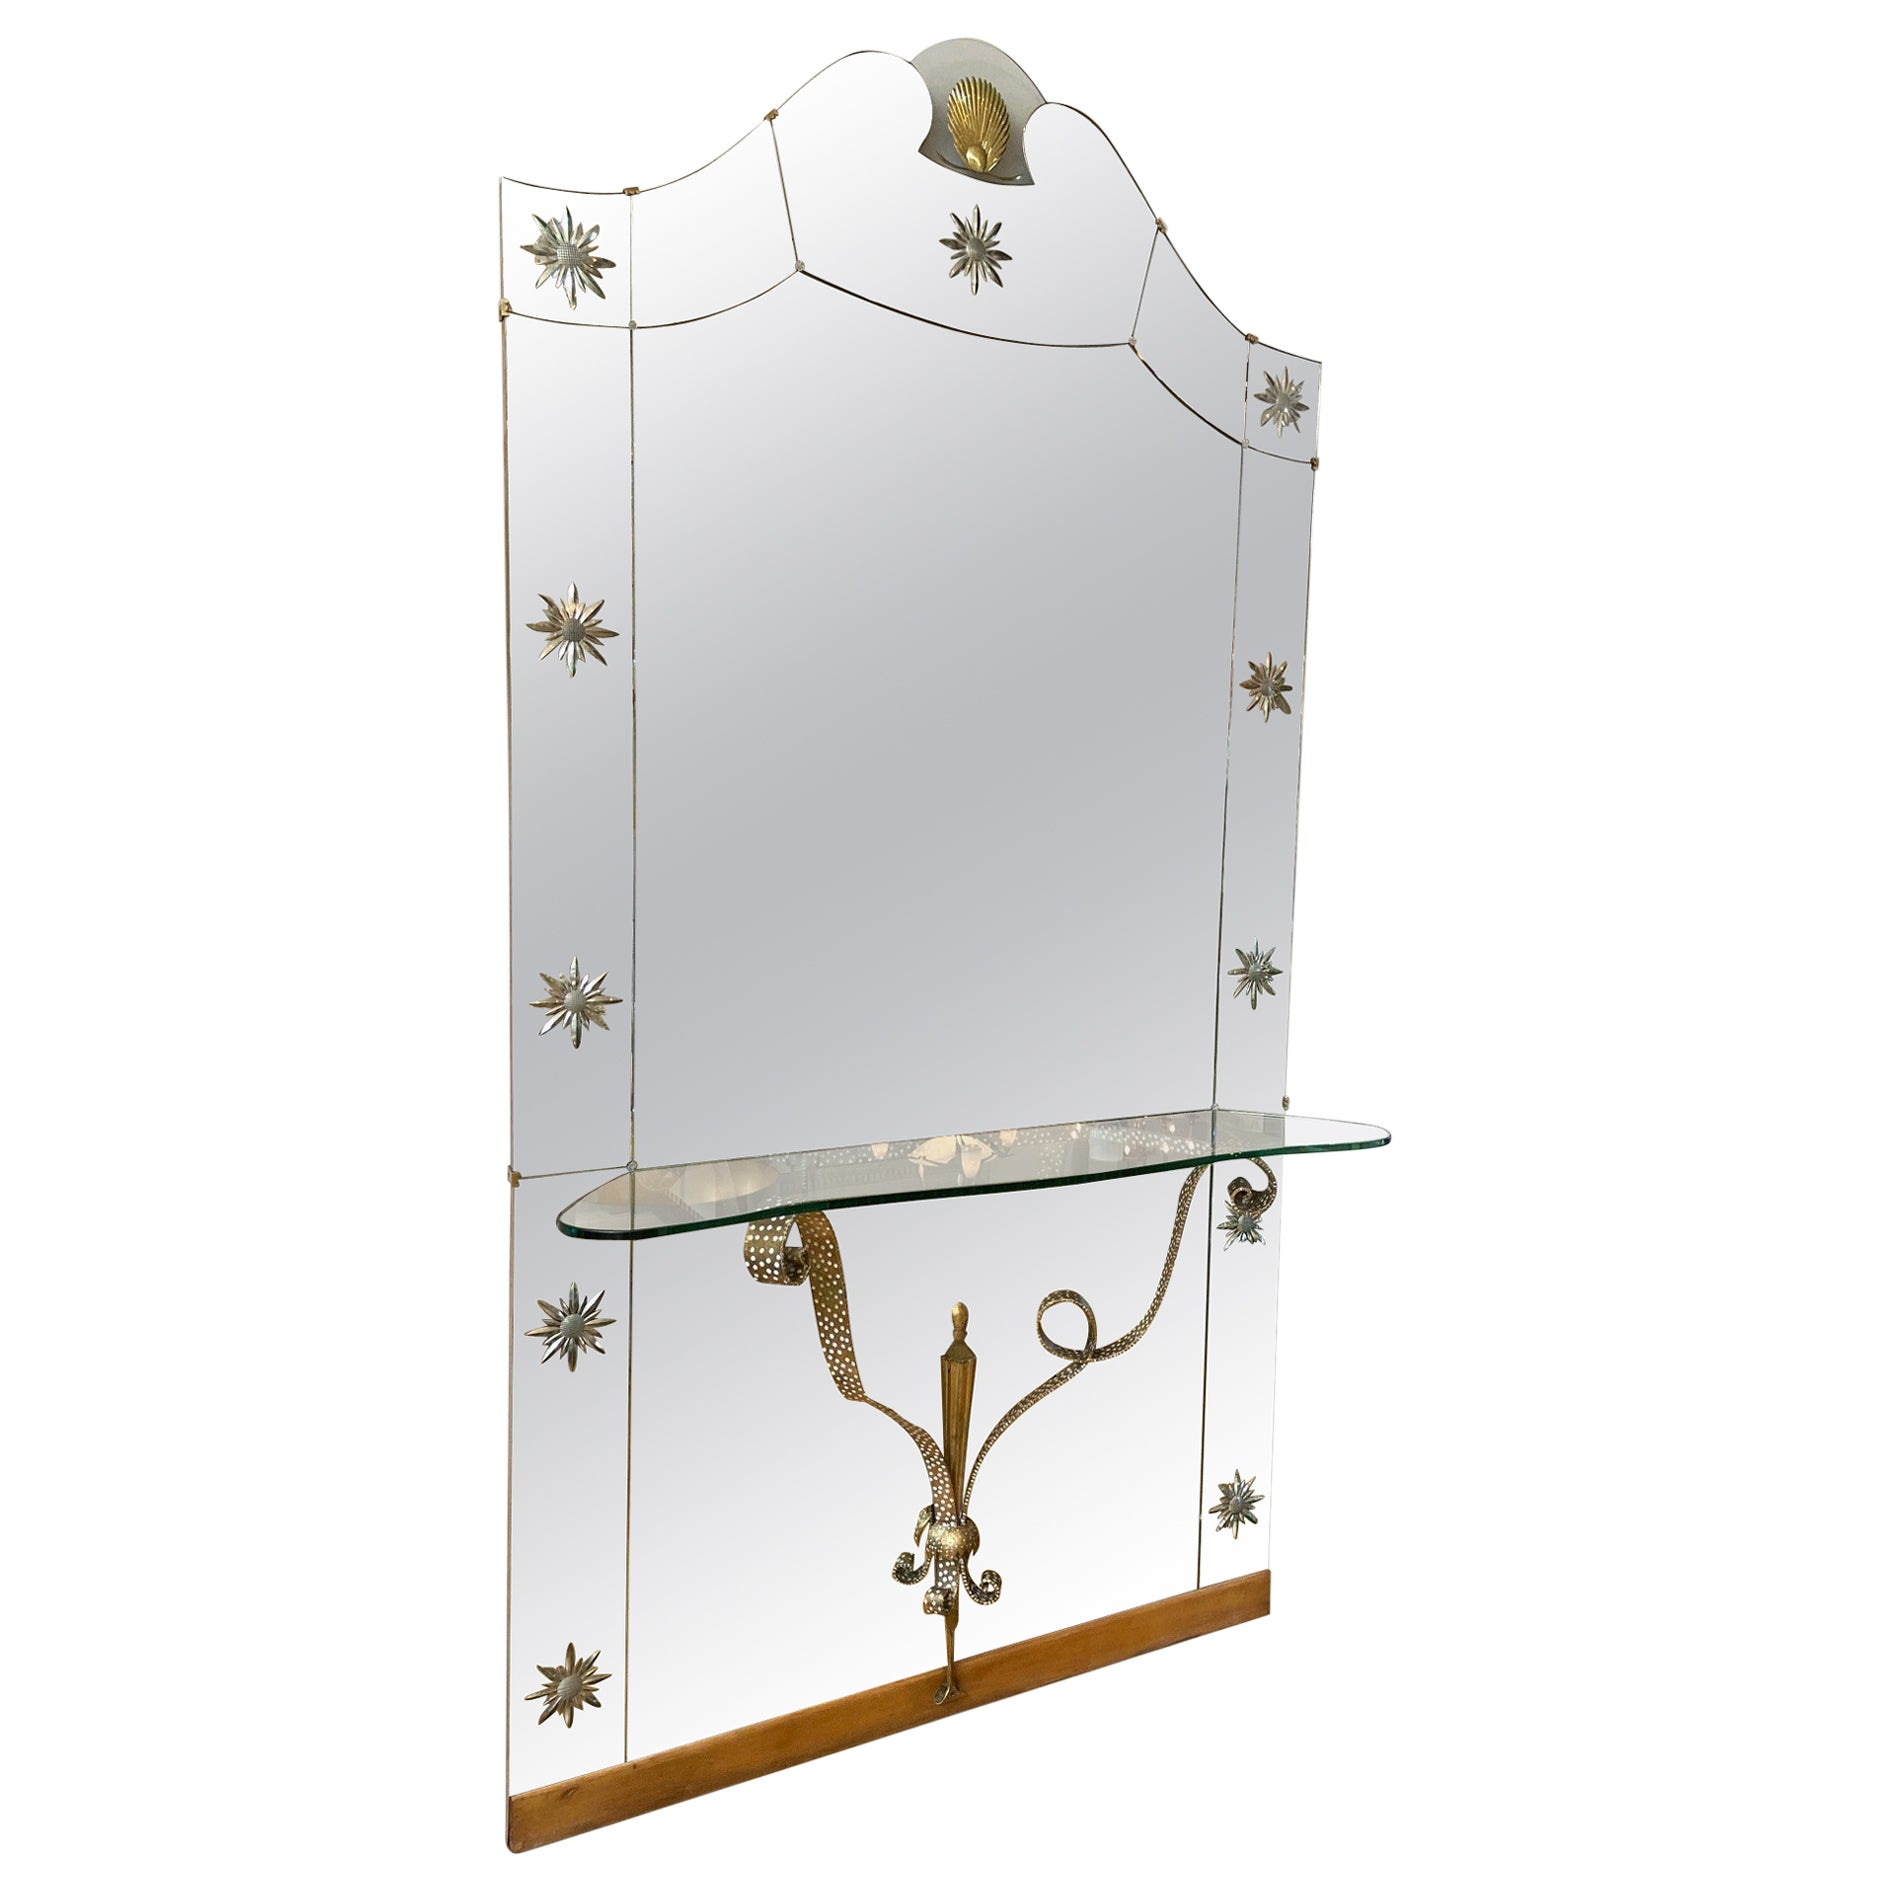 Mid-Century Modern Italian Mirror with Console by Pier Luigi Colli